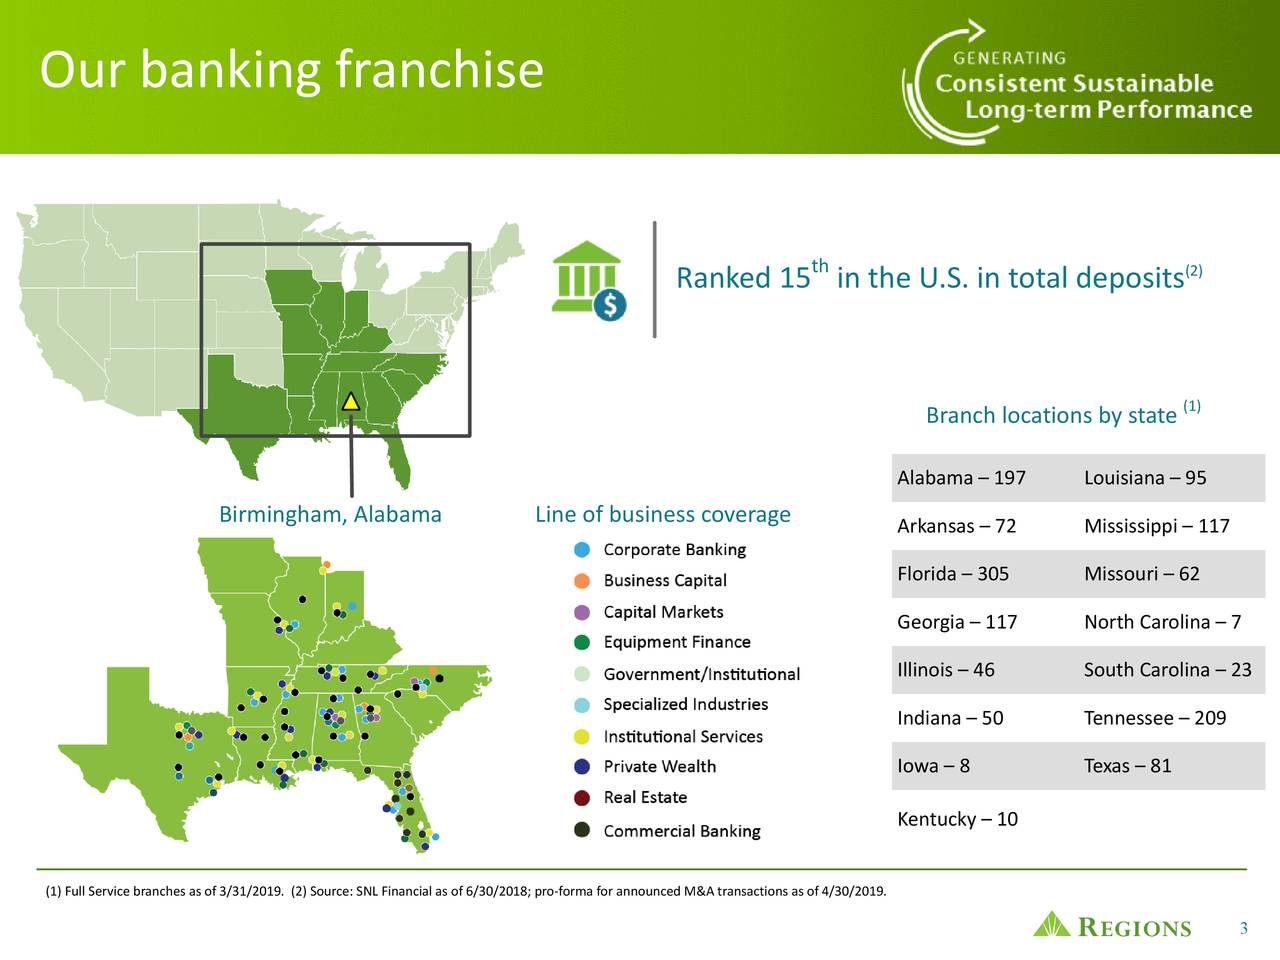 th (2) Ranked 15 in the U.S. in total deposits Branch locations by state (1) Alabama – 197 Louisiana – 95 Birmingham, Alabama Line of business coverage Arkansas – 72 Mississippi – 117 Florida – 305 Missouri – 62 Georgia – 117 North Carolina – 7 Illinois – 46 South Carolina – 23 Indiana – 50 Tennessee – 209 Iowa – 8 Texas – 81 Kentucky – 10 (1) Full Service branches as of 3/31/2019. (2) Source: SNL Financial as of 6/30/2018; pro-forma for announced M&A transactions as of 4/30/2019. 3